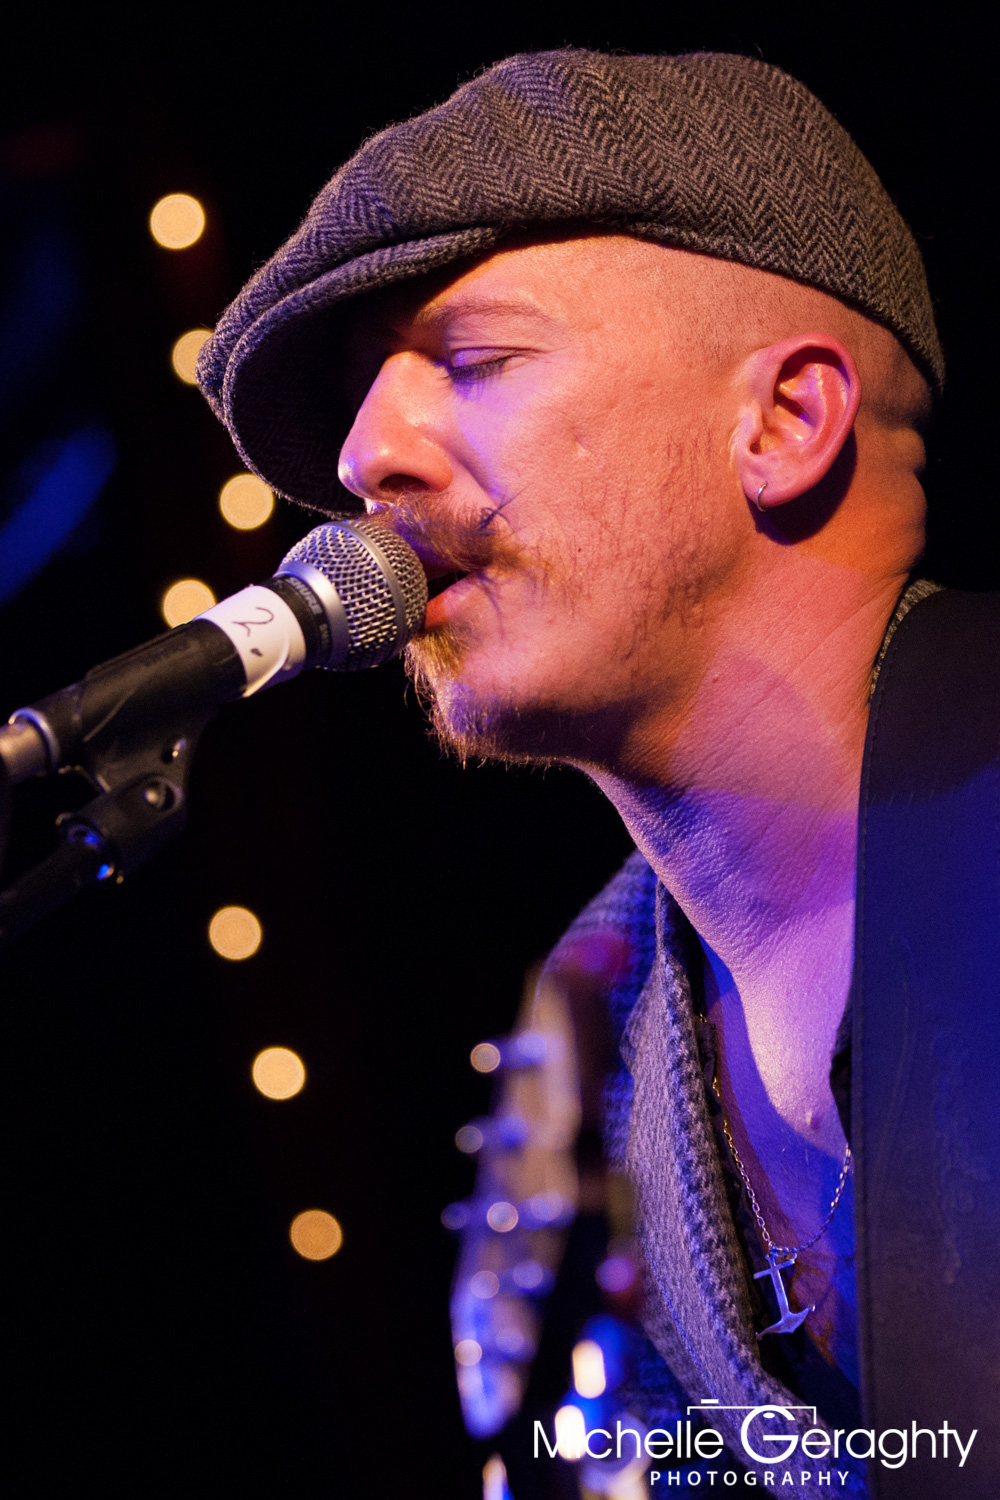 Foy Vance at the Sugar Club, Dublin